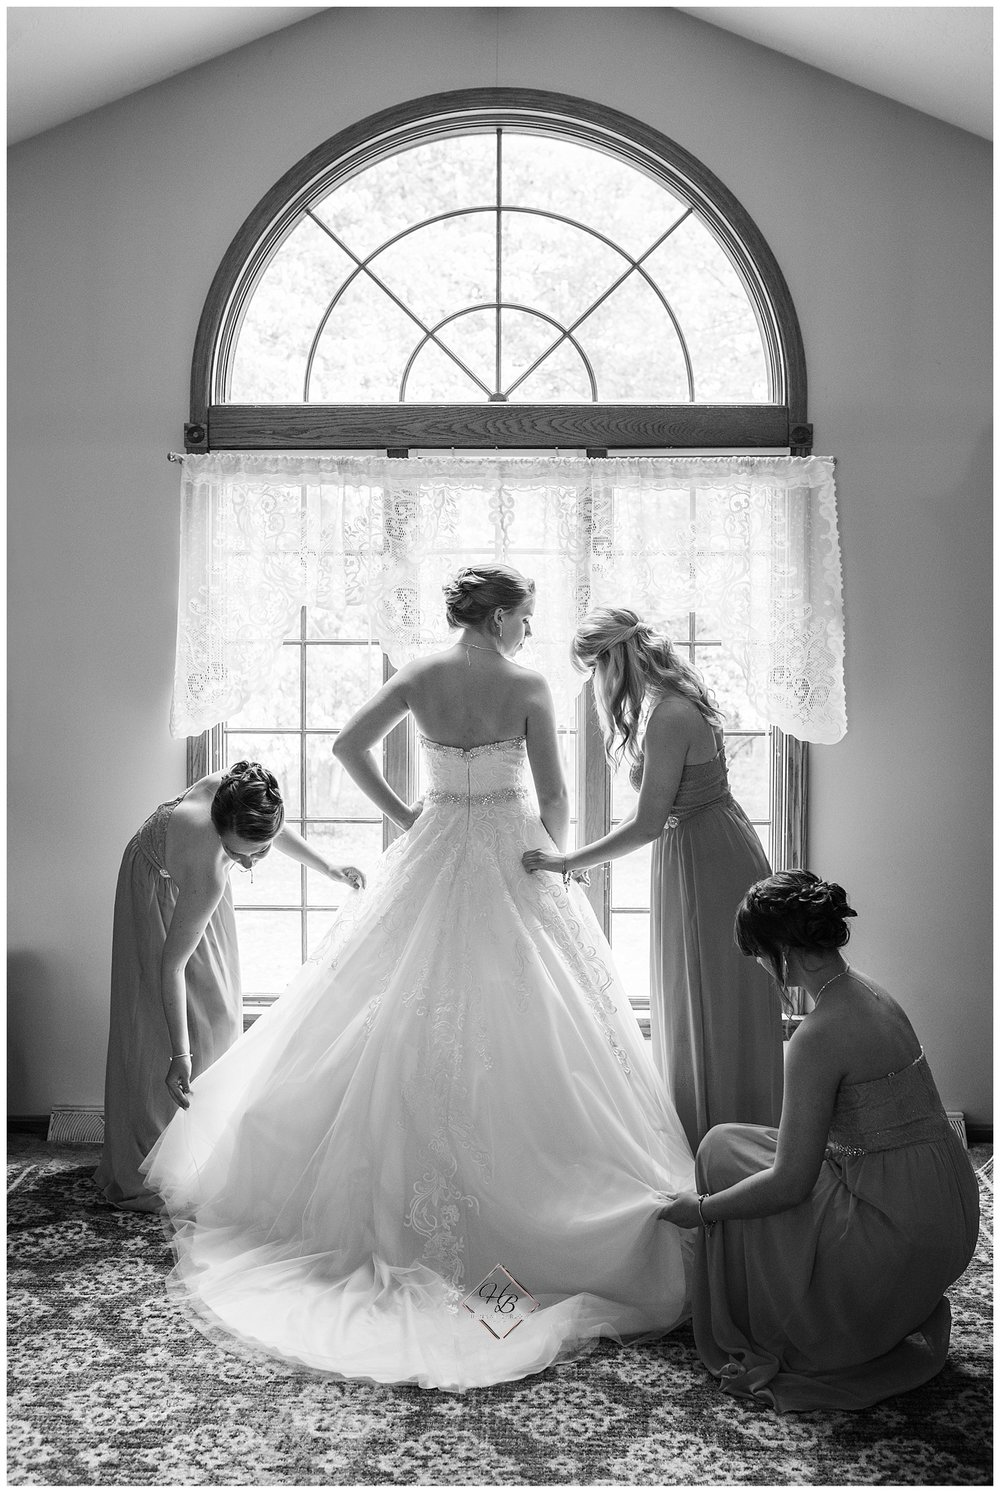 Youngstown, OH Fairytale Wedding Bride And Bridesmaids Getting Ready